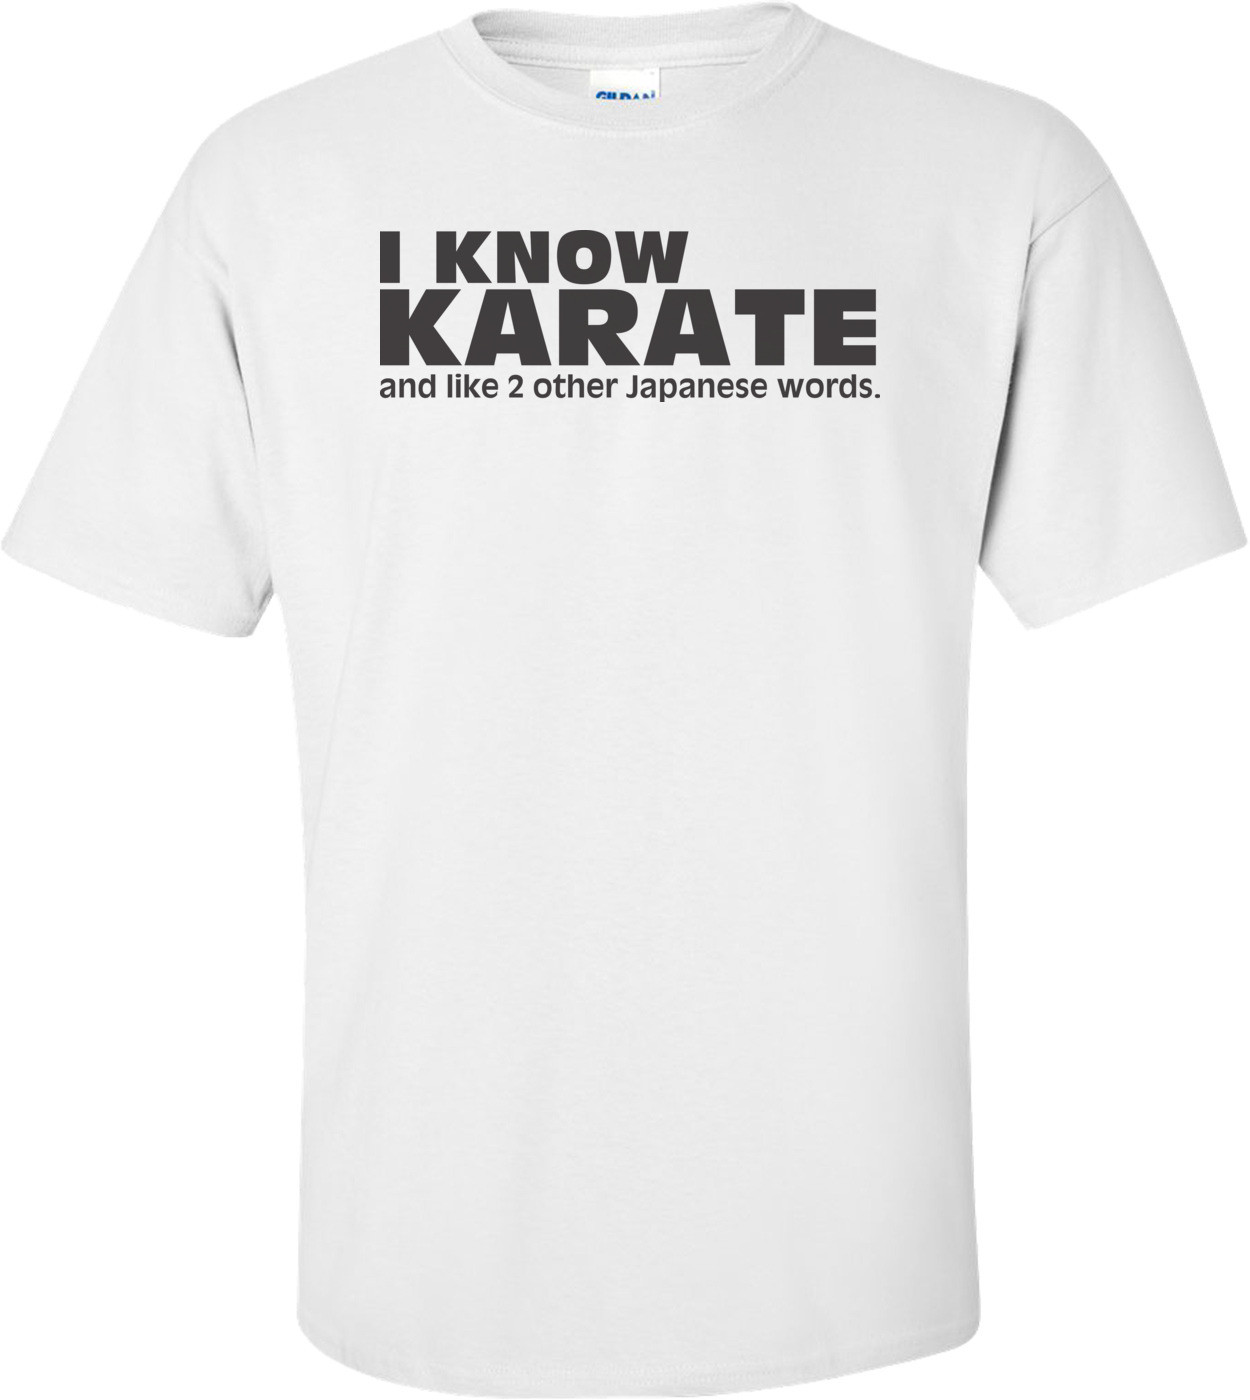 I Know Karate, And Like 2 Other Japanese Words T-shirt